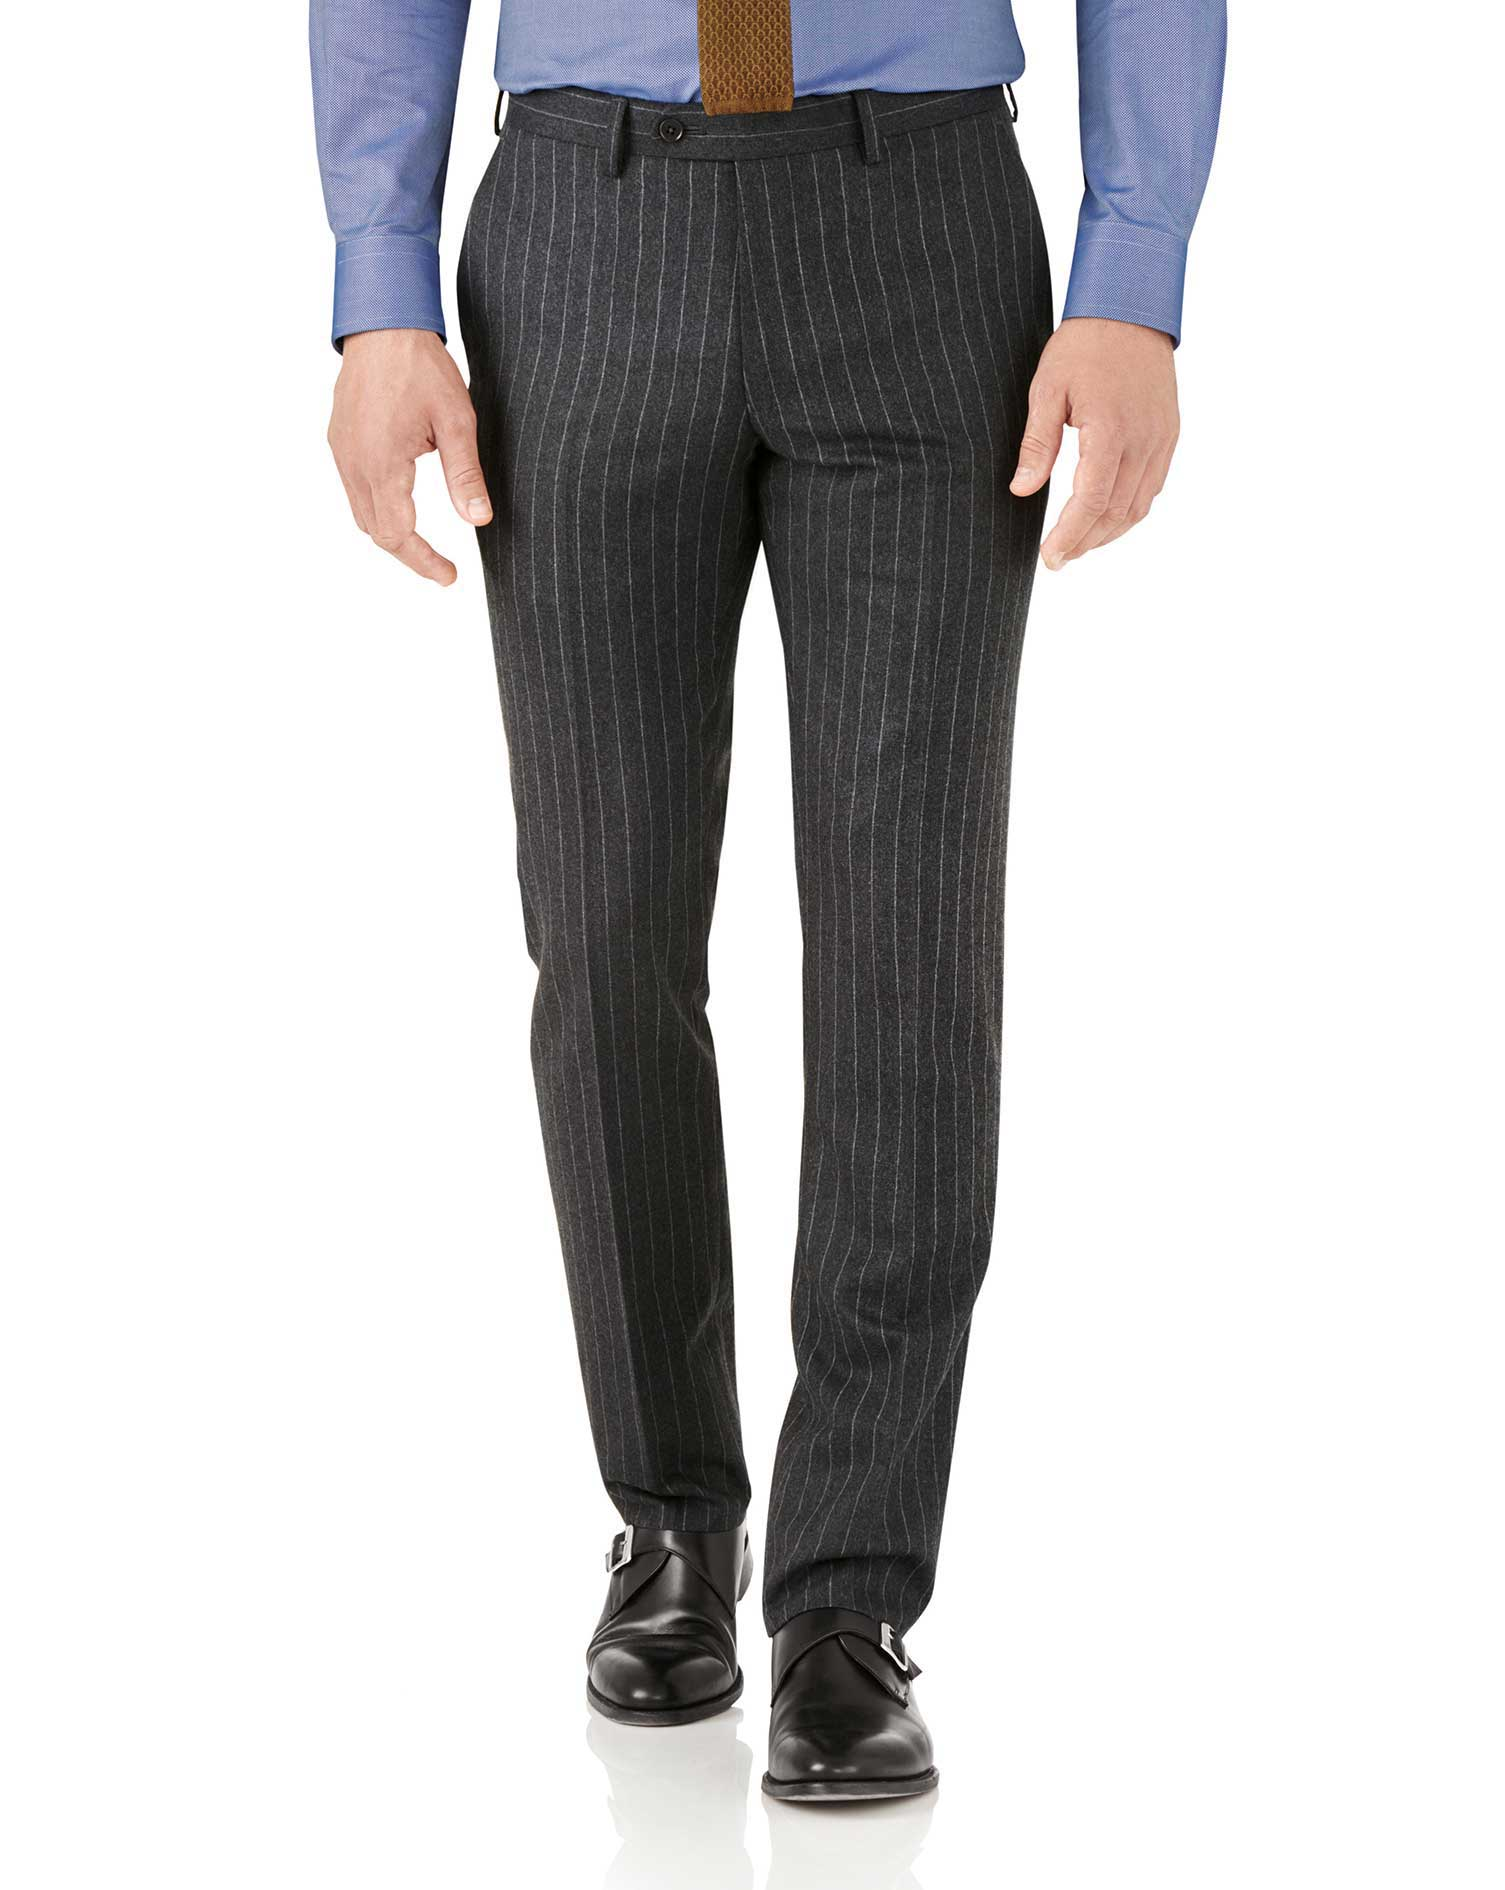 Charcoal Stripe Slim Fit Flannel Business Suit Trousers Size W38 L38 by Charles Tyrwhitt